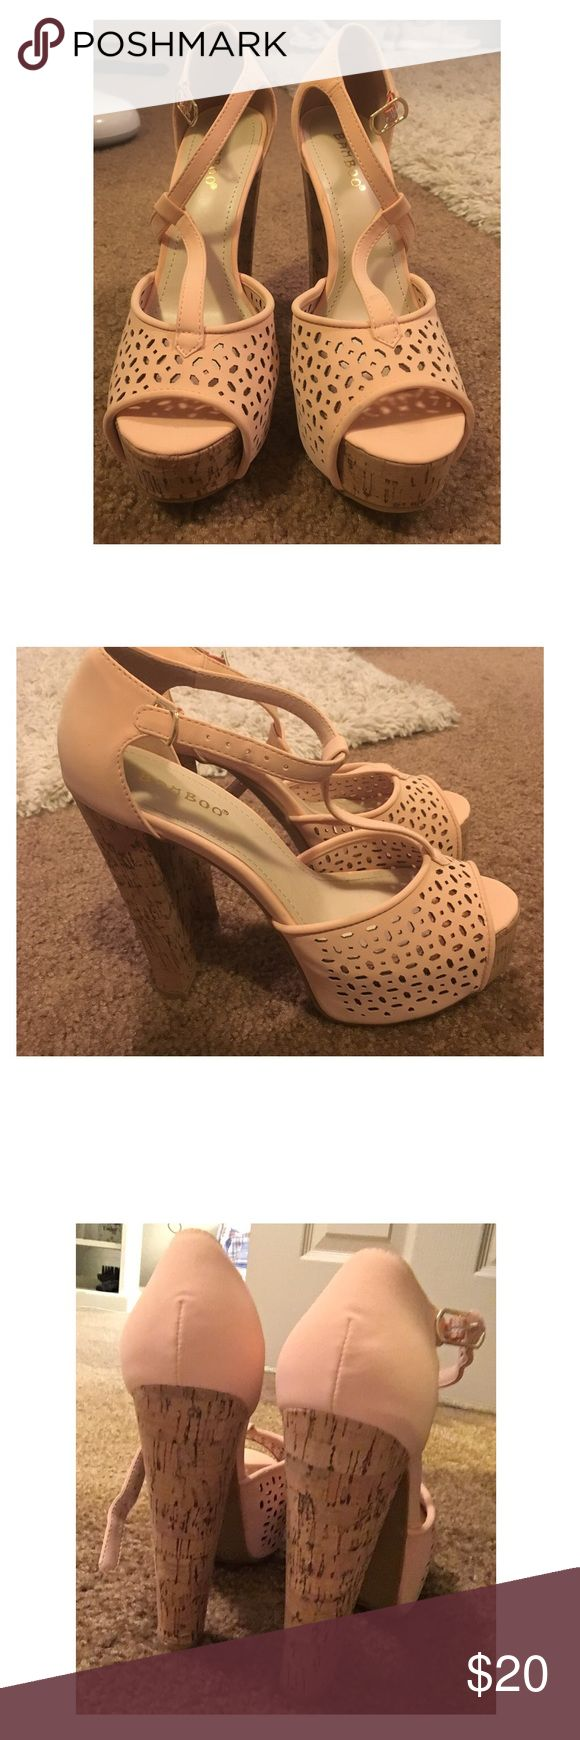 Platform heels Peach heels. Never been worn outside before. Perfect for the spring and summer! bamboo Shoes Heels